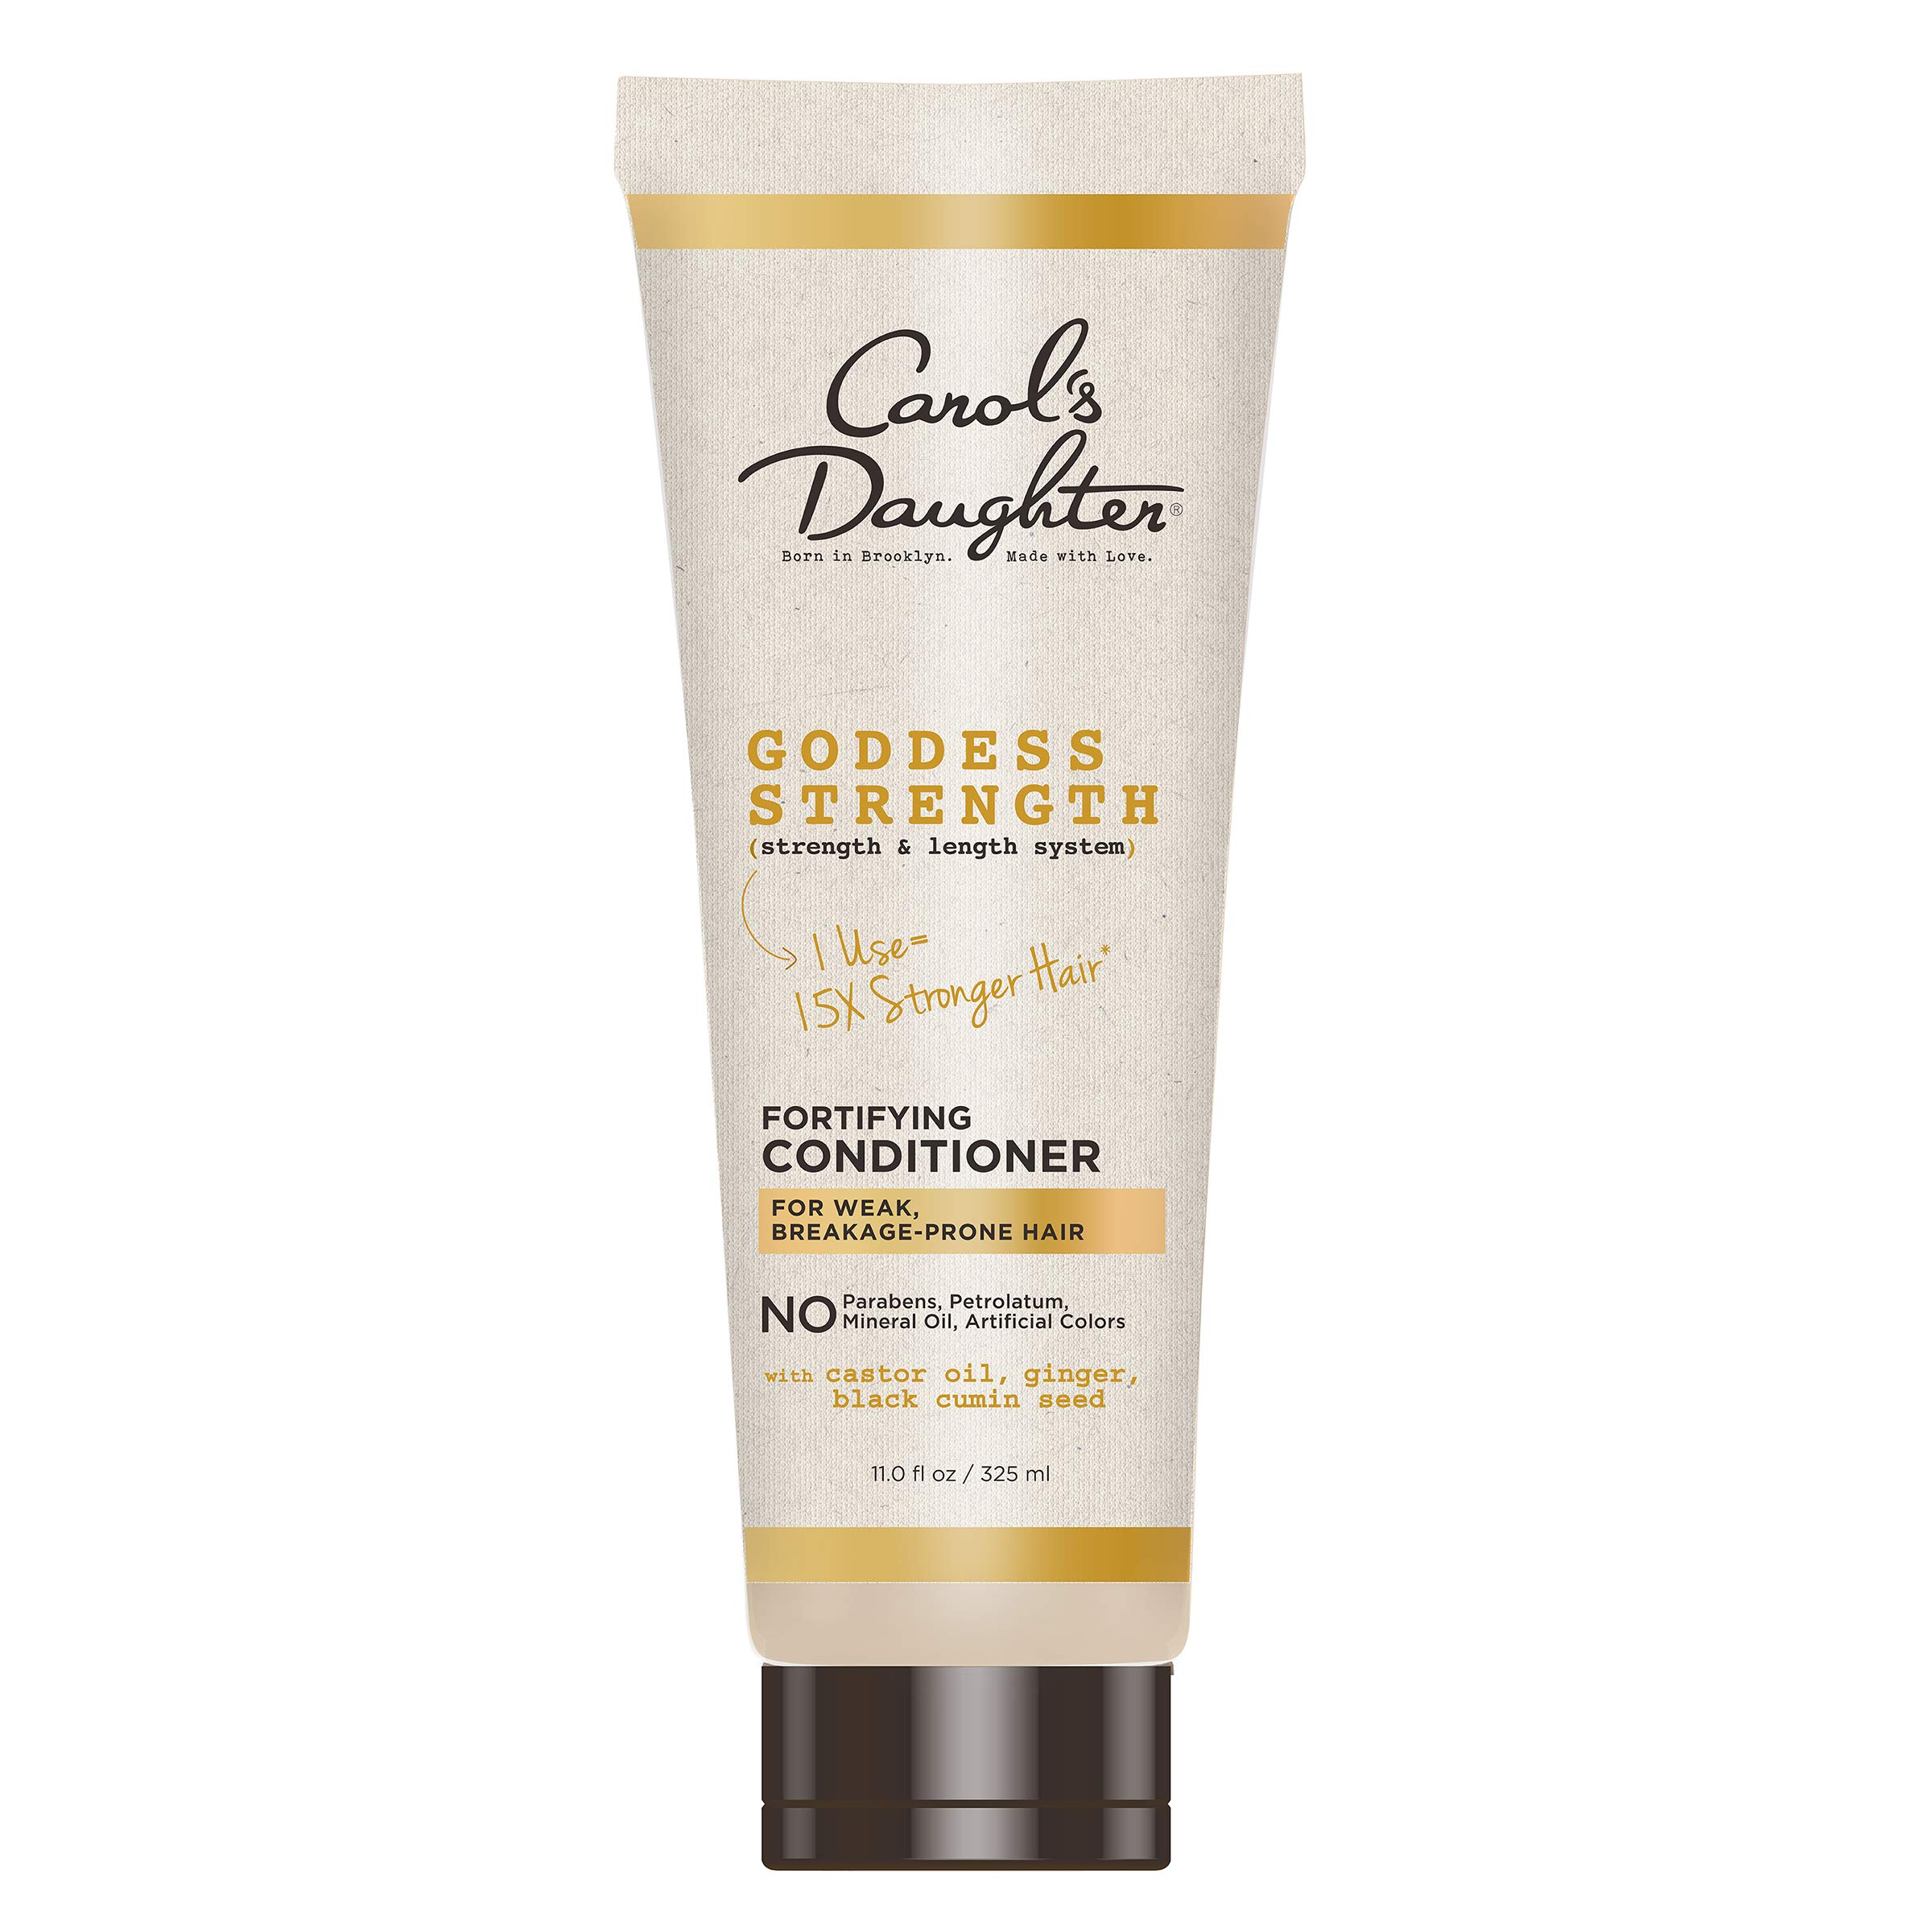 Carol's Daughter Goddess Strength Paraben Free Conditioner for Curly Hair with Castor Oil, Black Seed Oil and Ginger, For Weak, Breakage Prone Hair, Strenghetning Conditioner for Curly Hair 11 fl oz